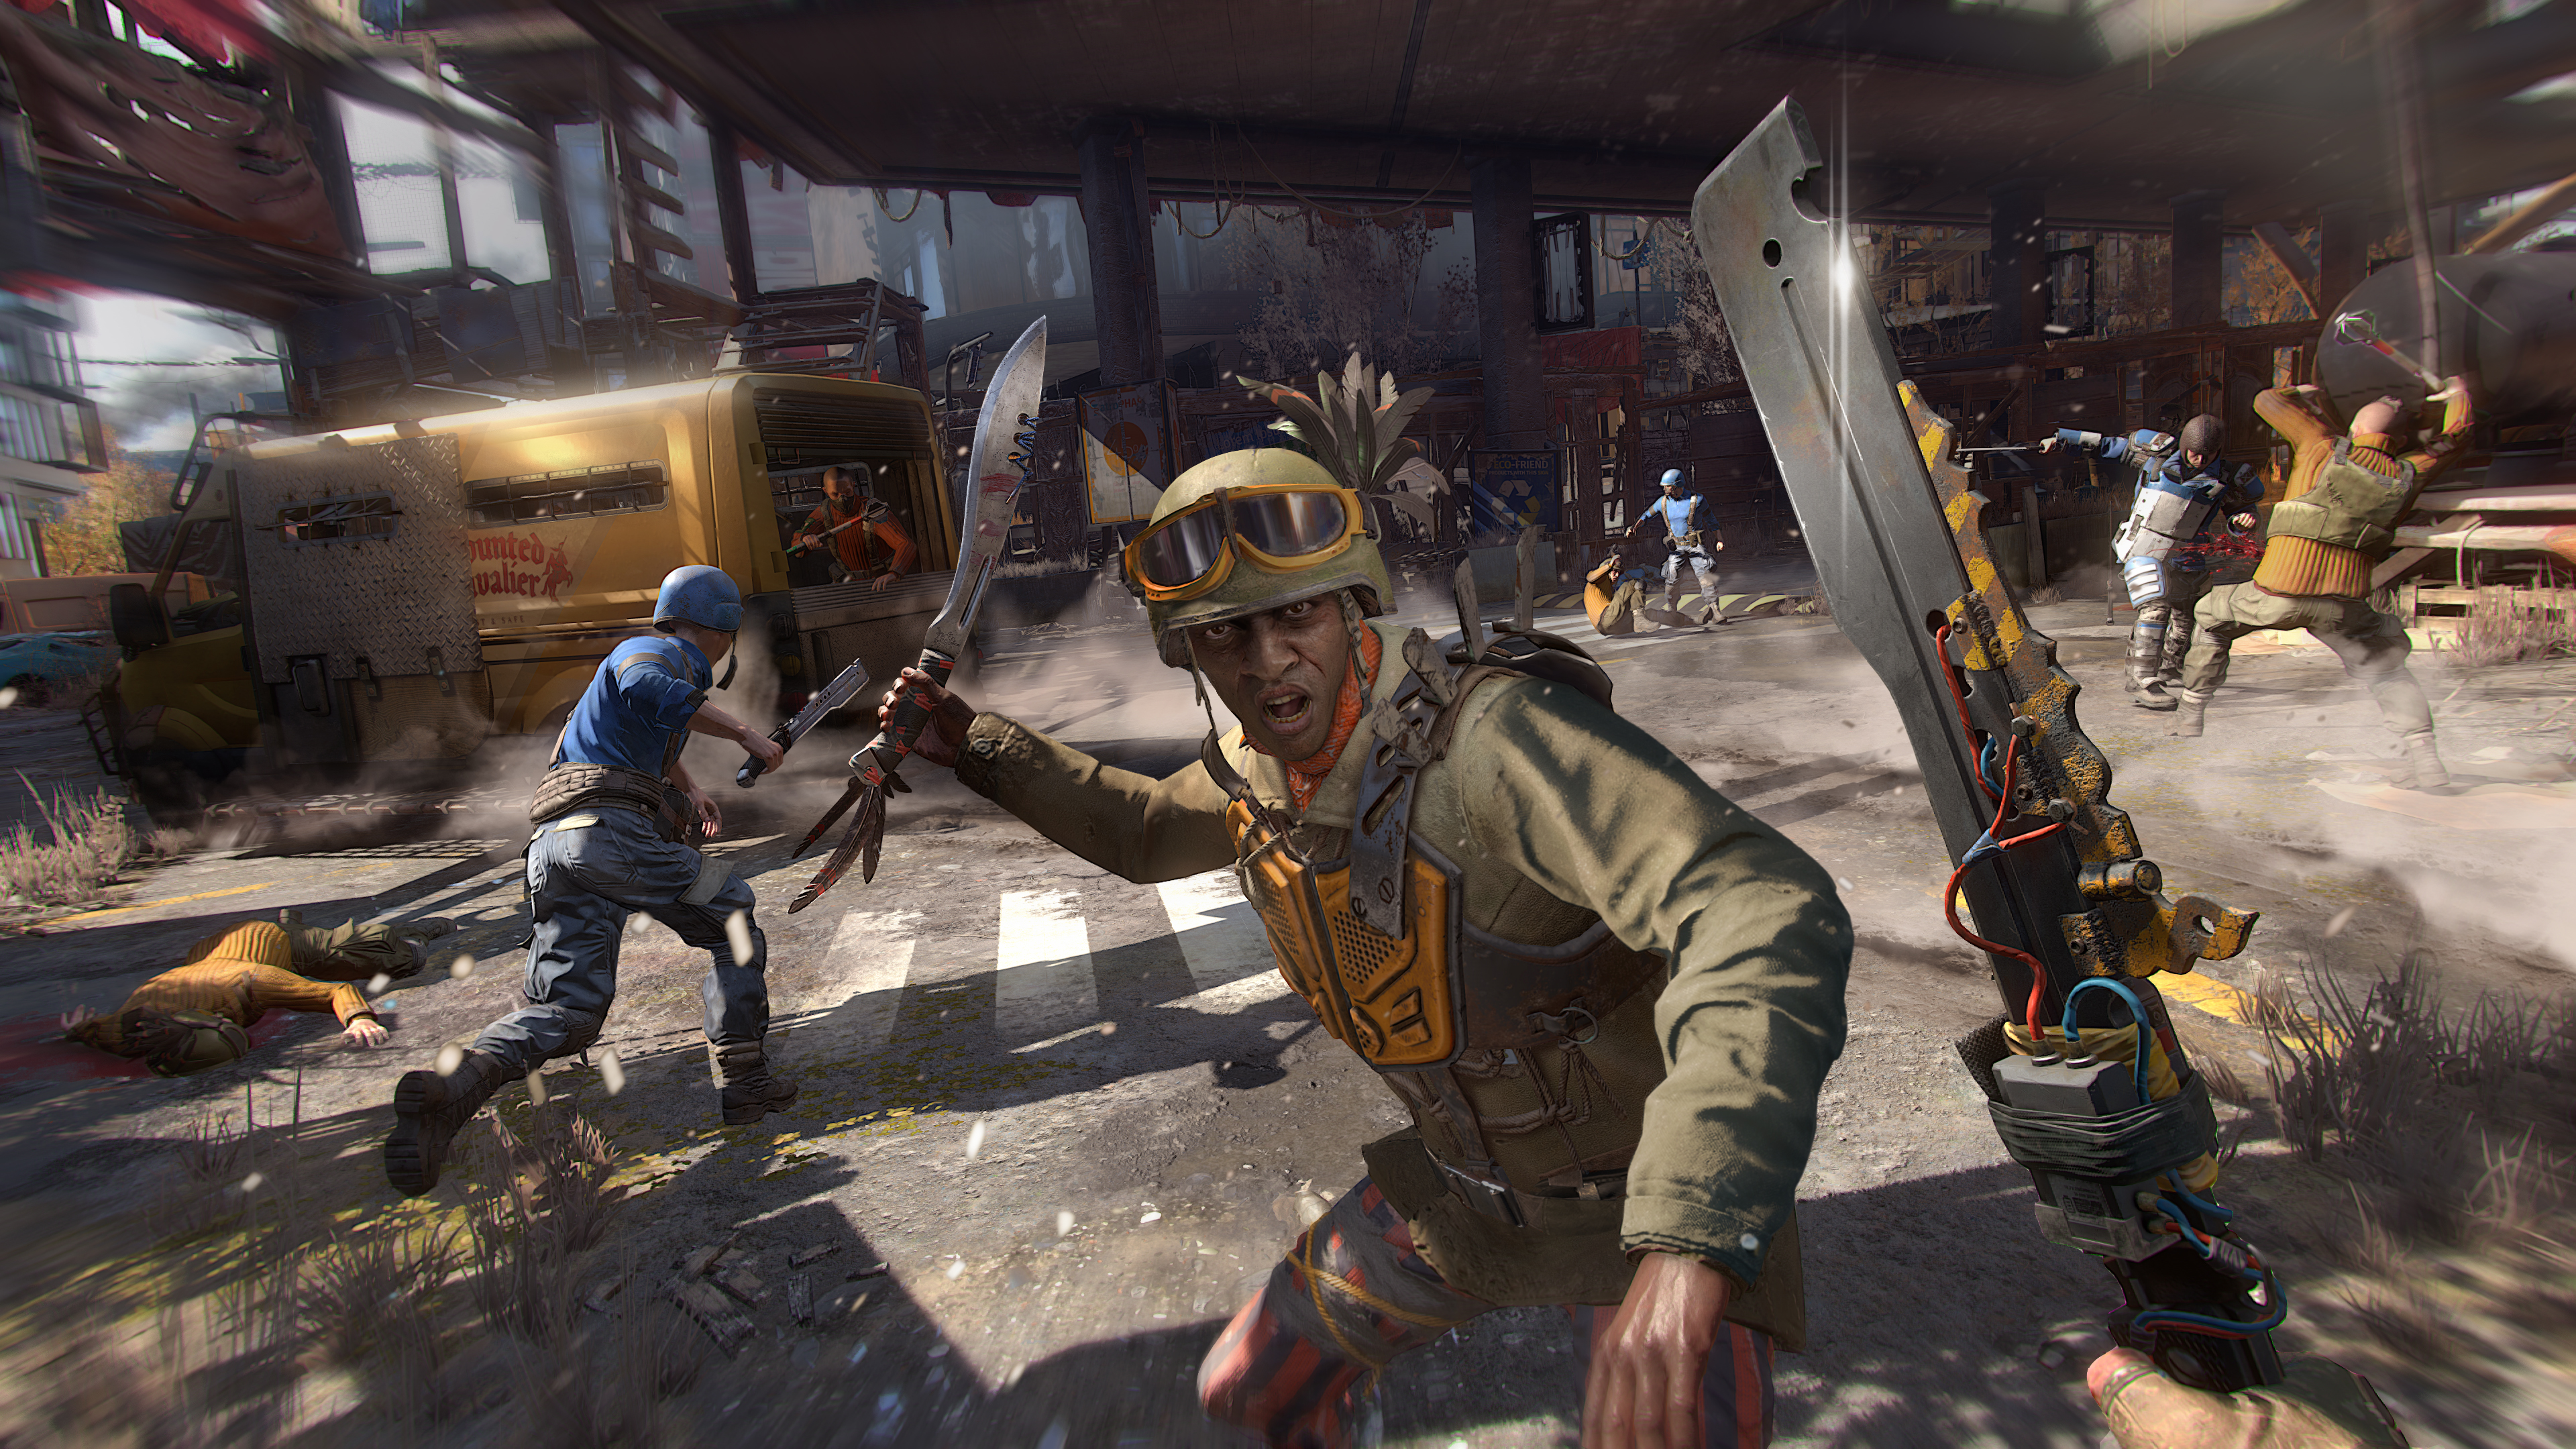 first-person machete combat with a soldier in Dying Light 2